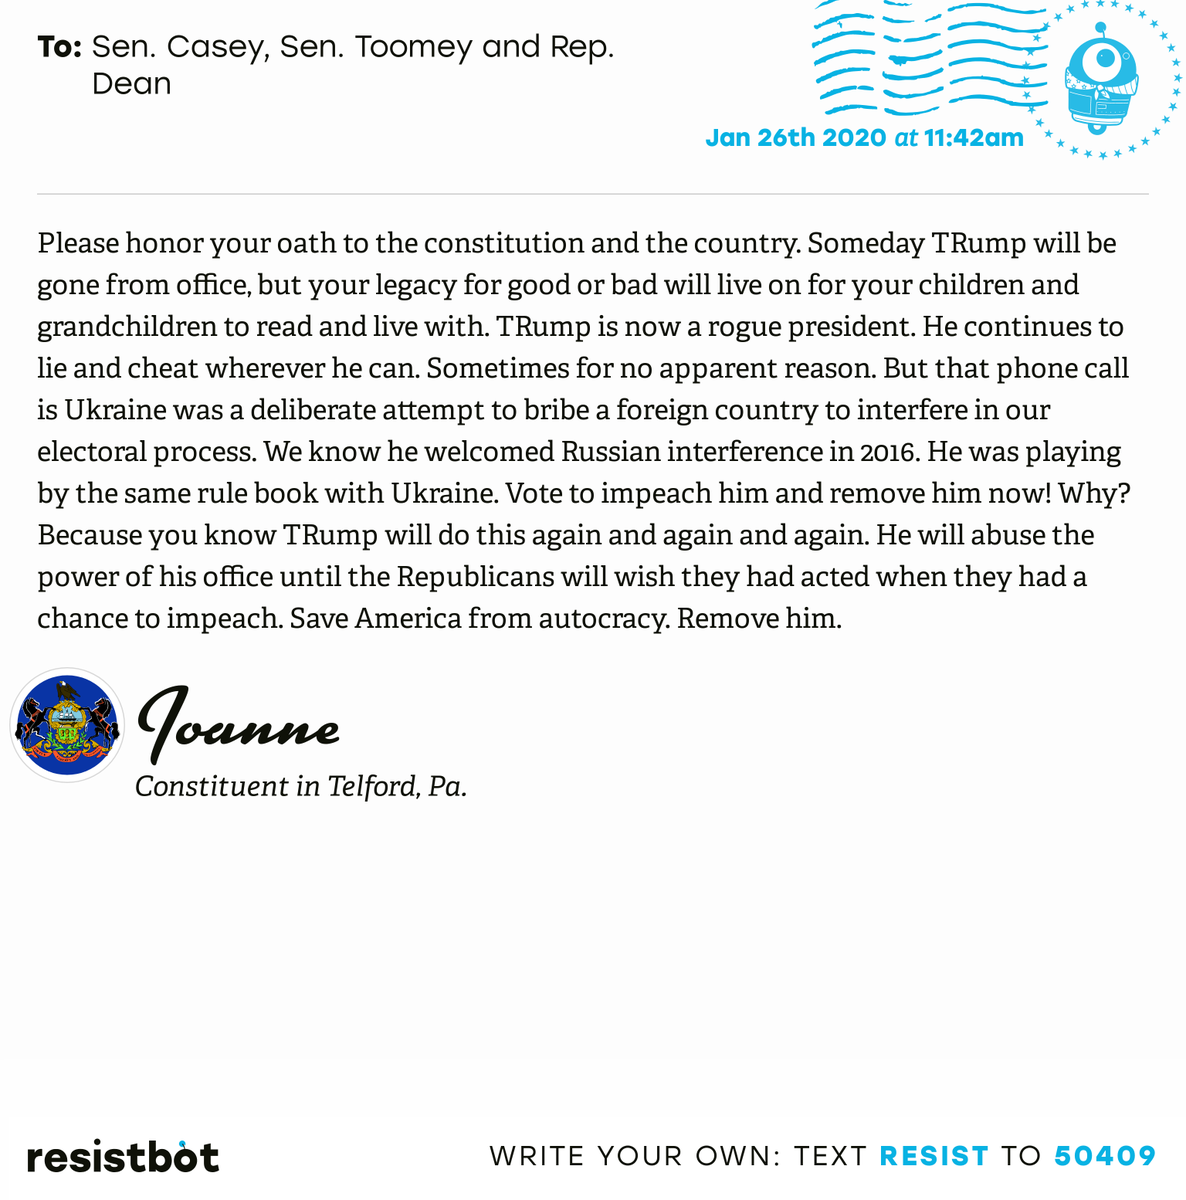 I just delivered this letter from Joanne in Telford, Pa. to @SenBobCasey, @SenToomey and @RepDean #PA04 #PApol #ImpeachmentInquiry